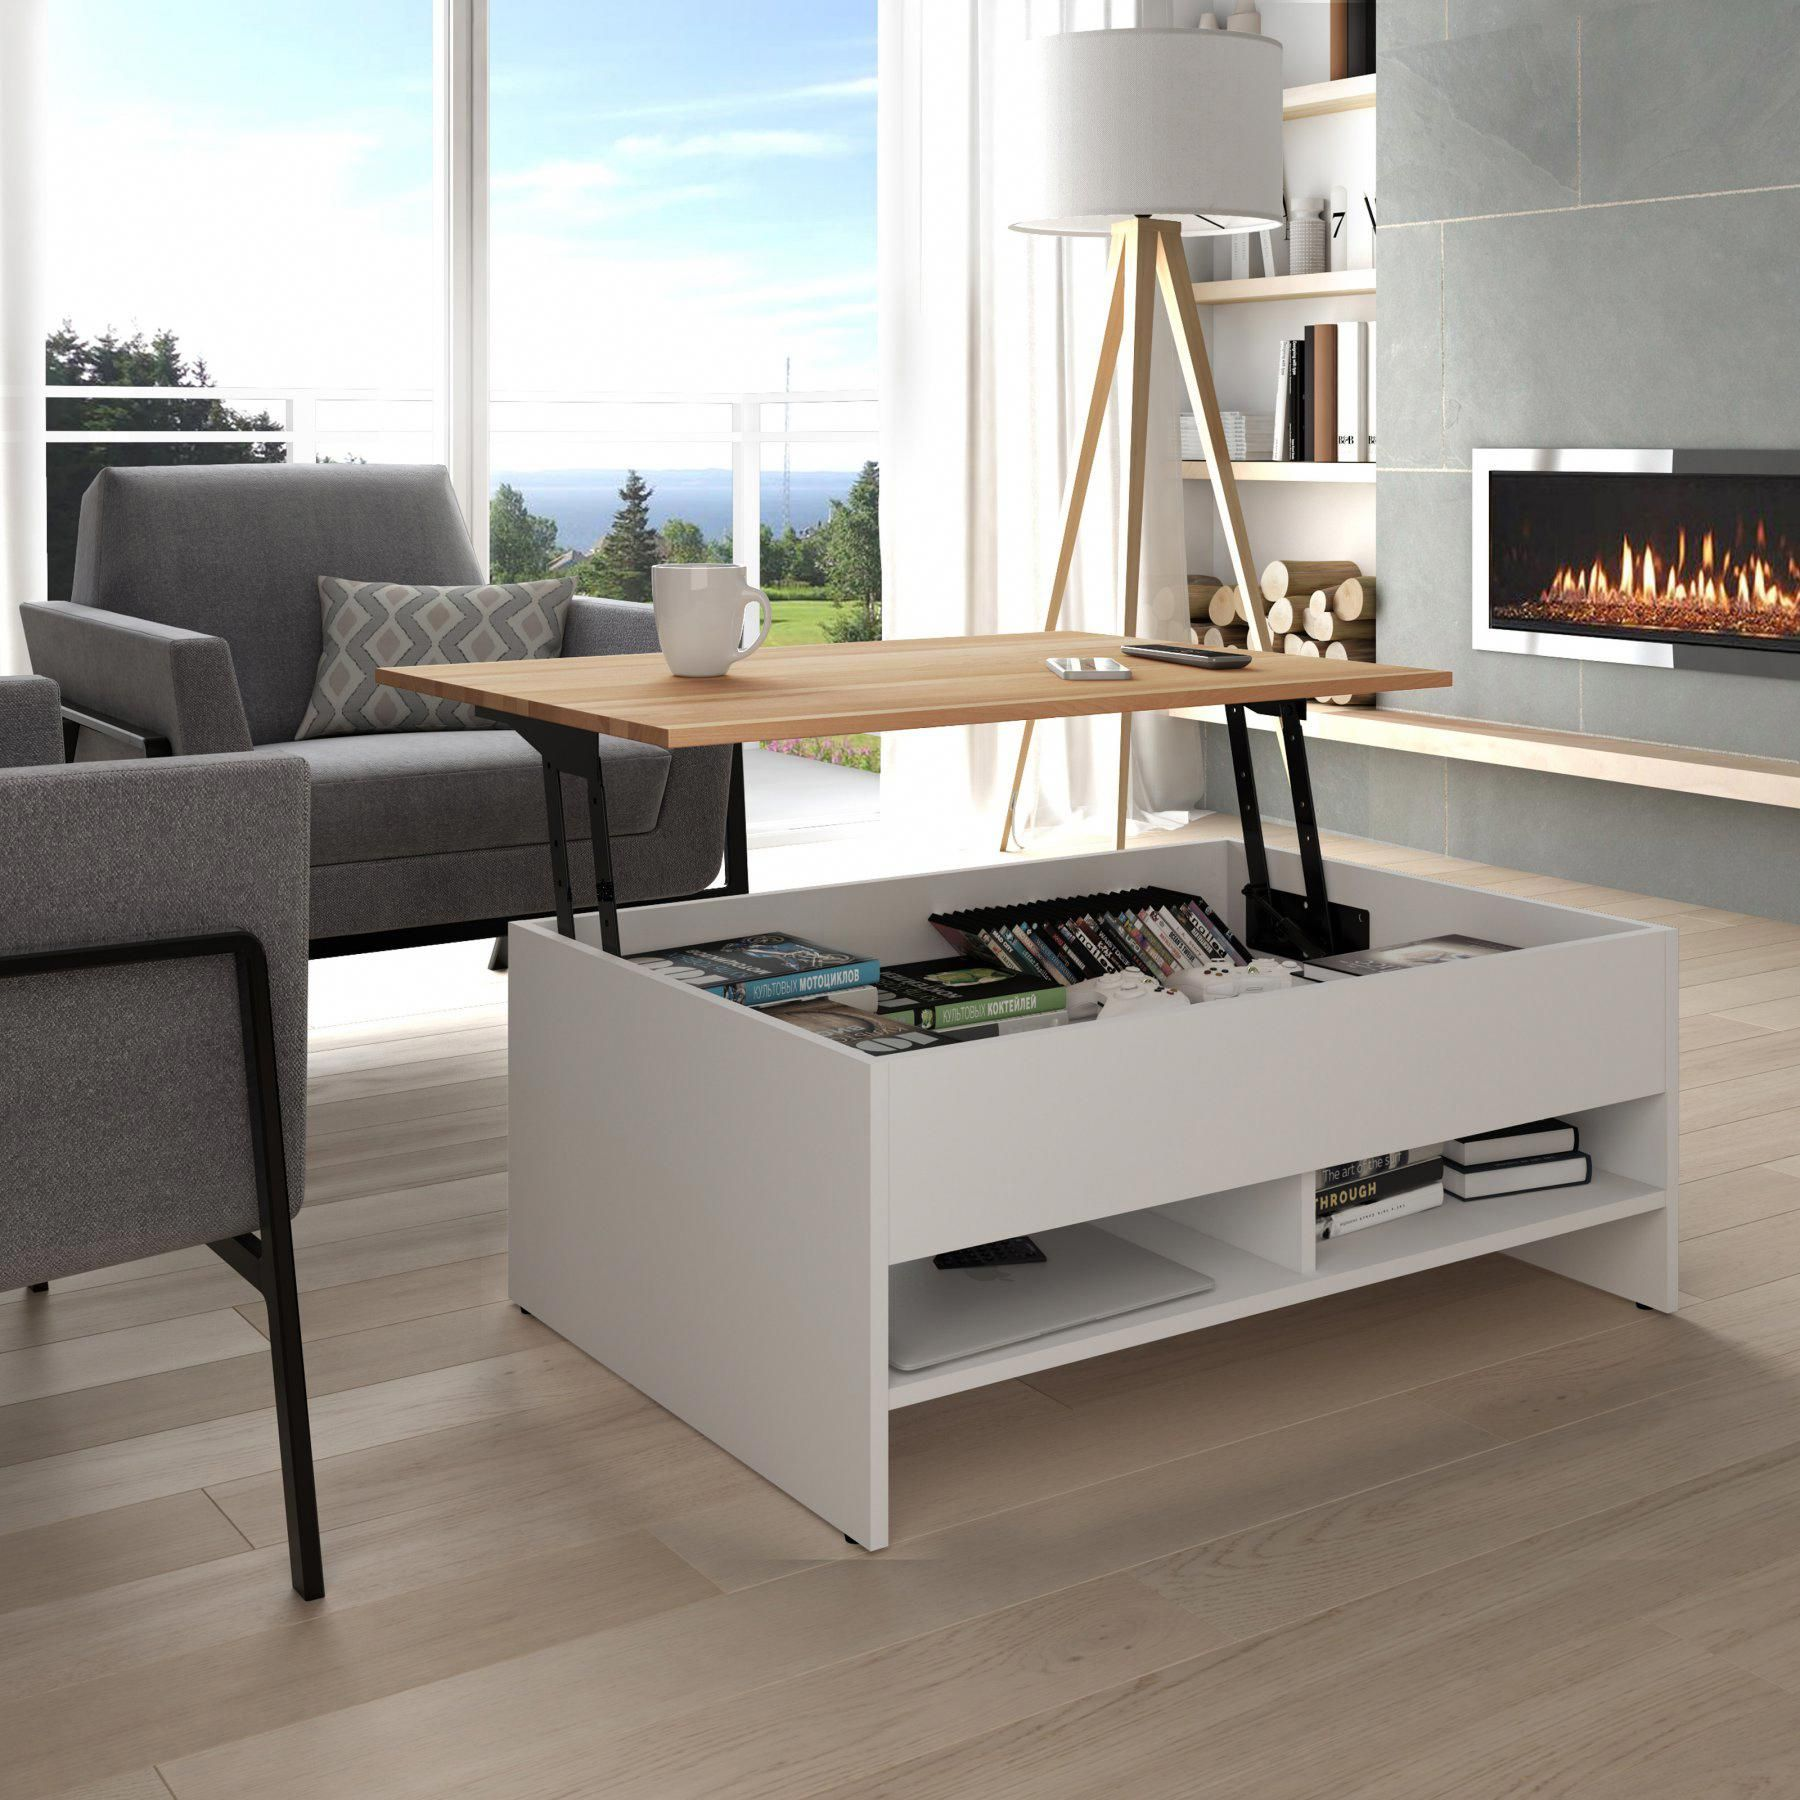 Bestar small space storage coffee table with lifttop